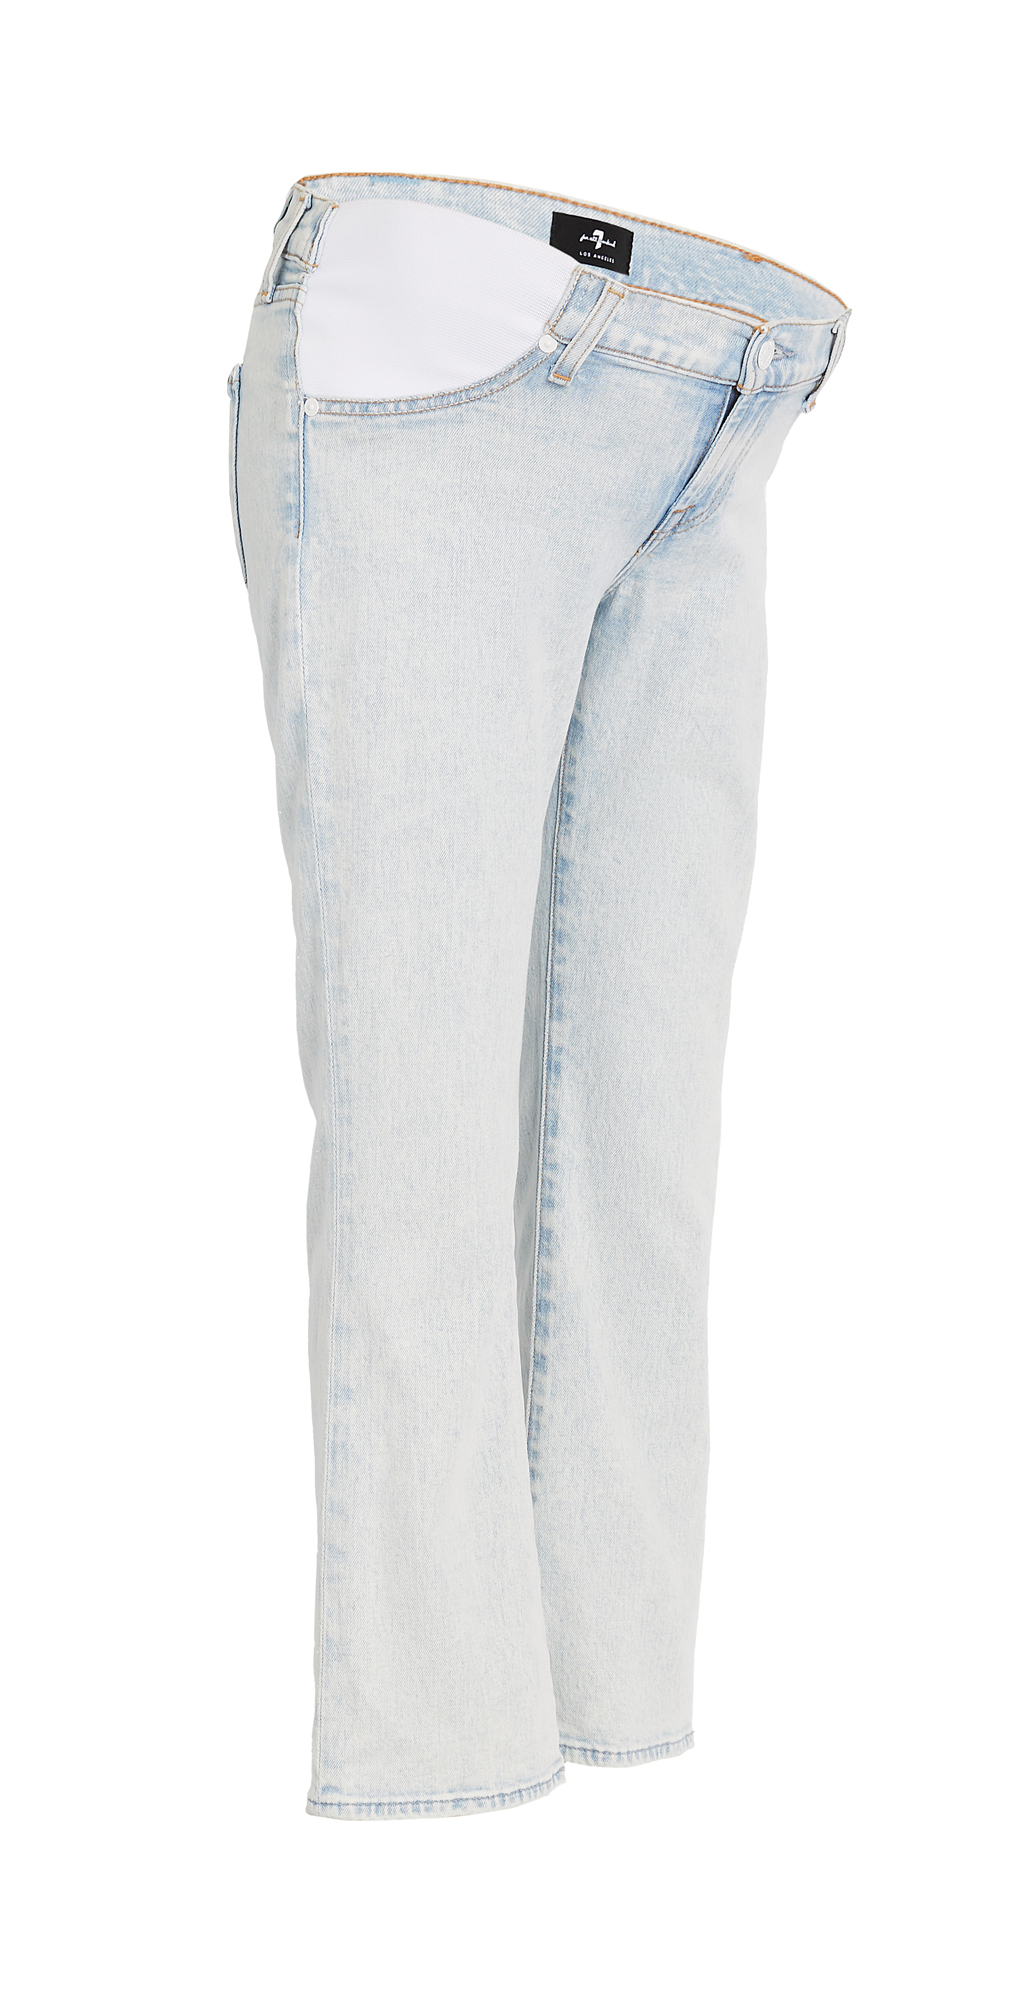 7 For All Mankind Maternity Slim Kick Jeans